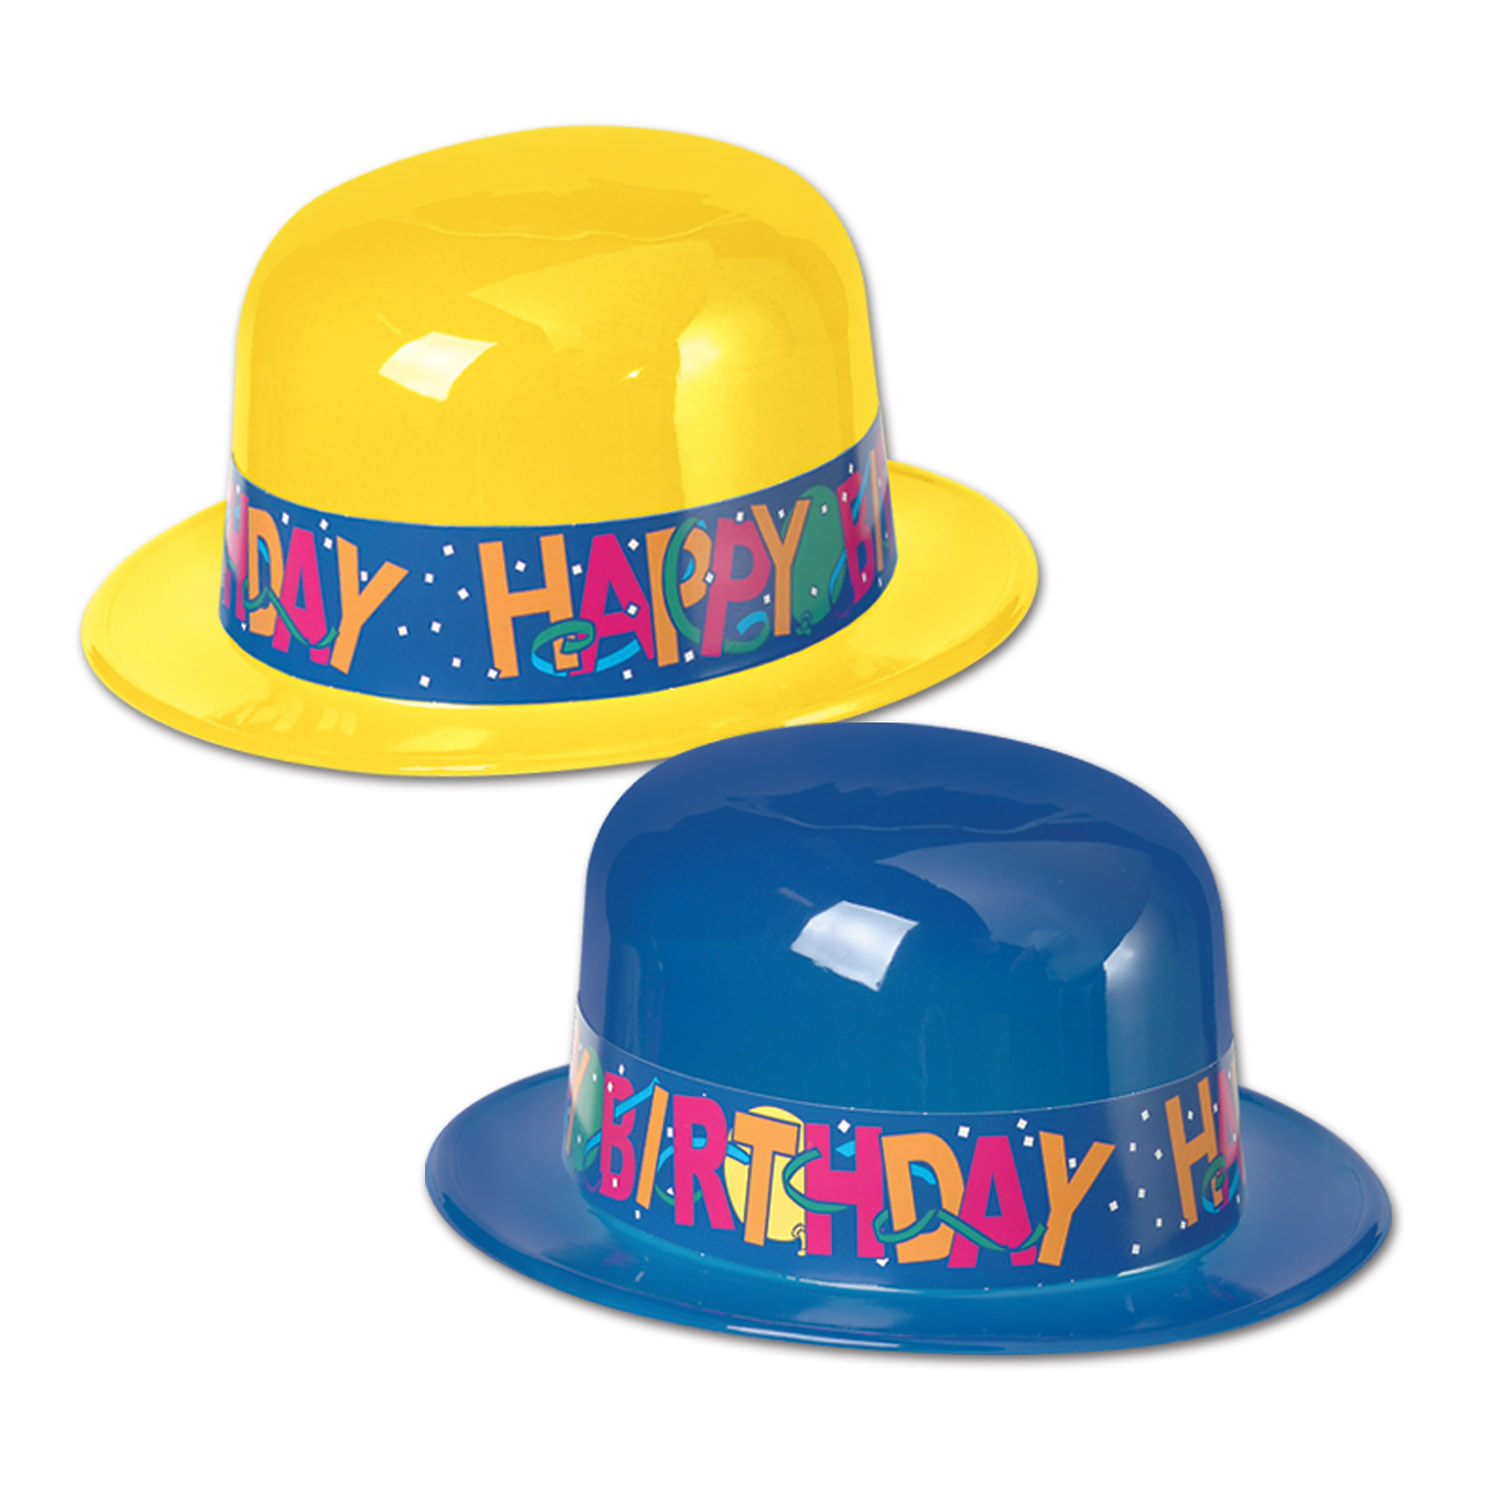 Plastic Derbies w/Happy Birthday Band (pack of 24) Plastic Derby Hats, party favor, hats, birthday, wholesale, inexpensive, bulk